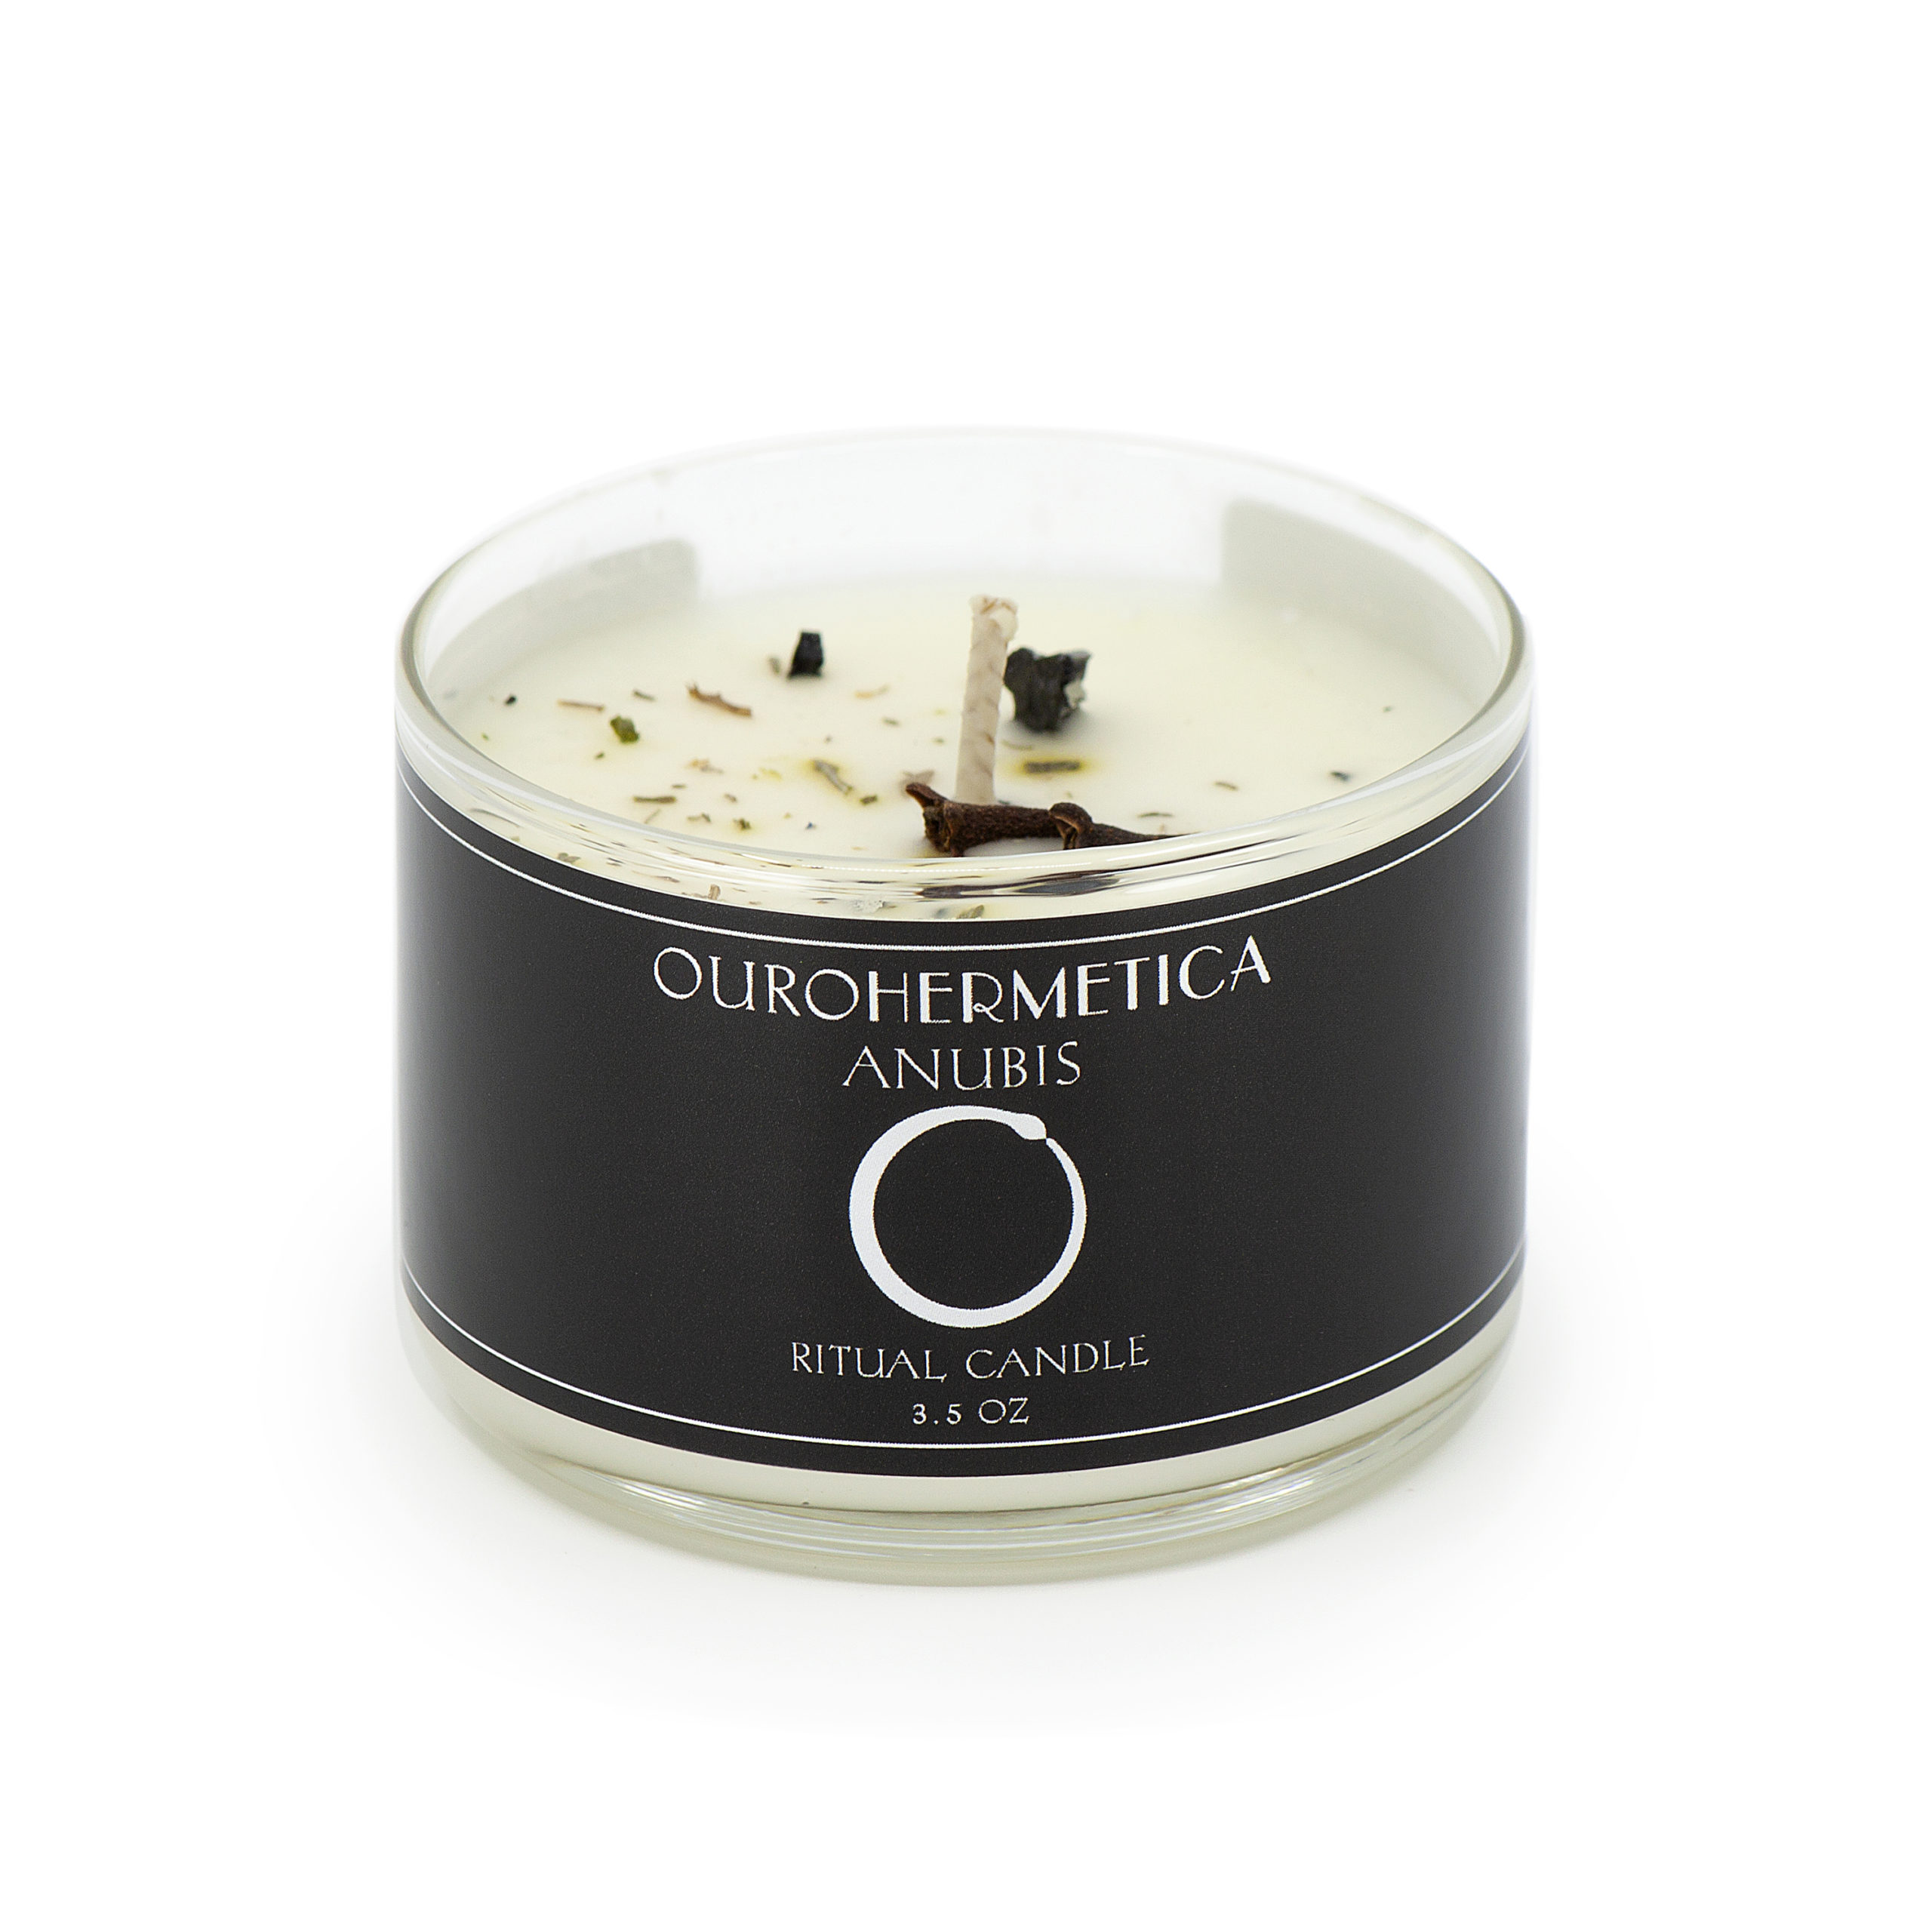 3.6 ounce candle with OuroHermetica Anubis black label with ouroboros icon